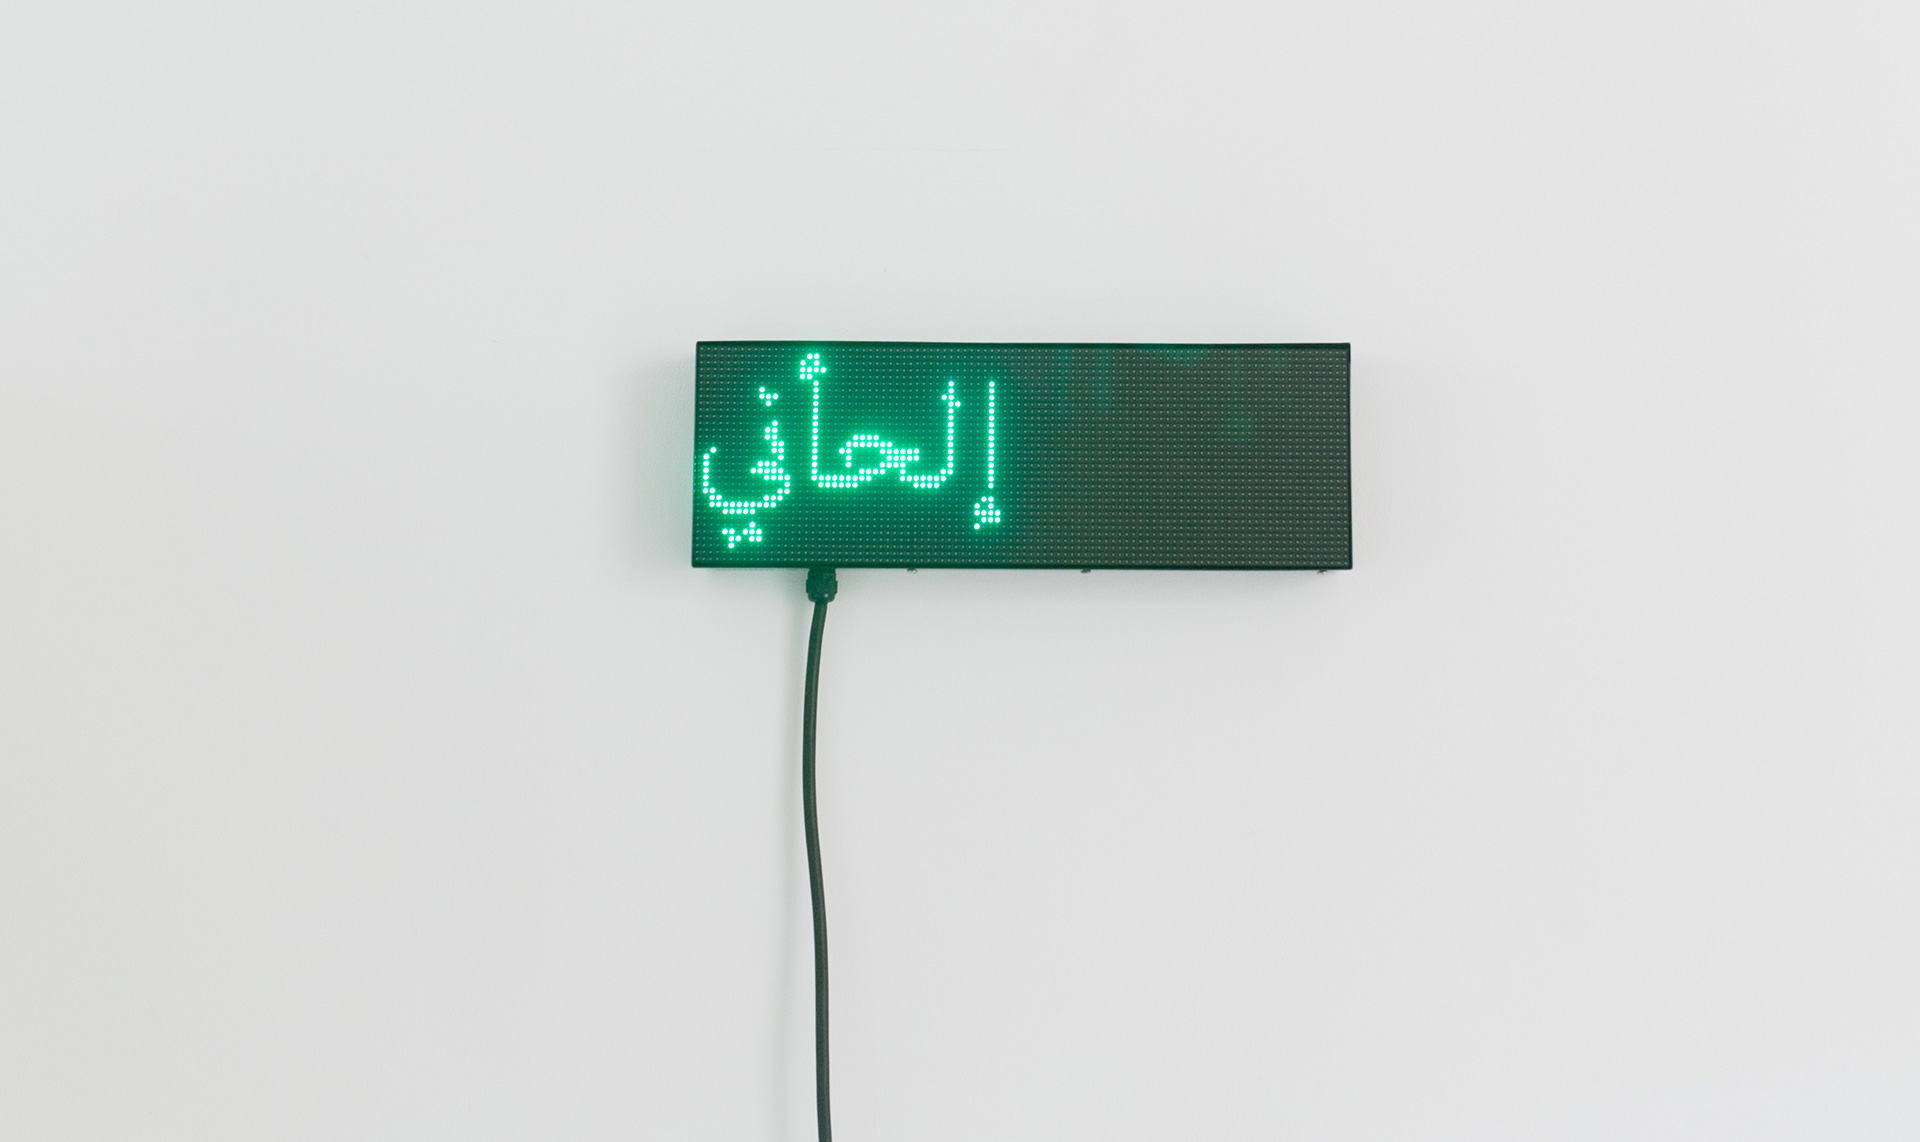 Areej Kaoud, Khod Nafass 1.0 (Take a Breath/Breathe), 2018, custom yellow and red LED panel + software, 17 x 49 cm | Speculative Landscapes | NYU Abu Dhabi (NYUAD) Art Gallery | STIRworld